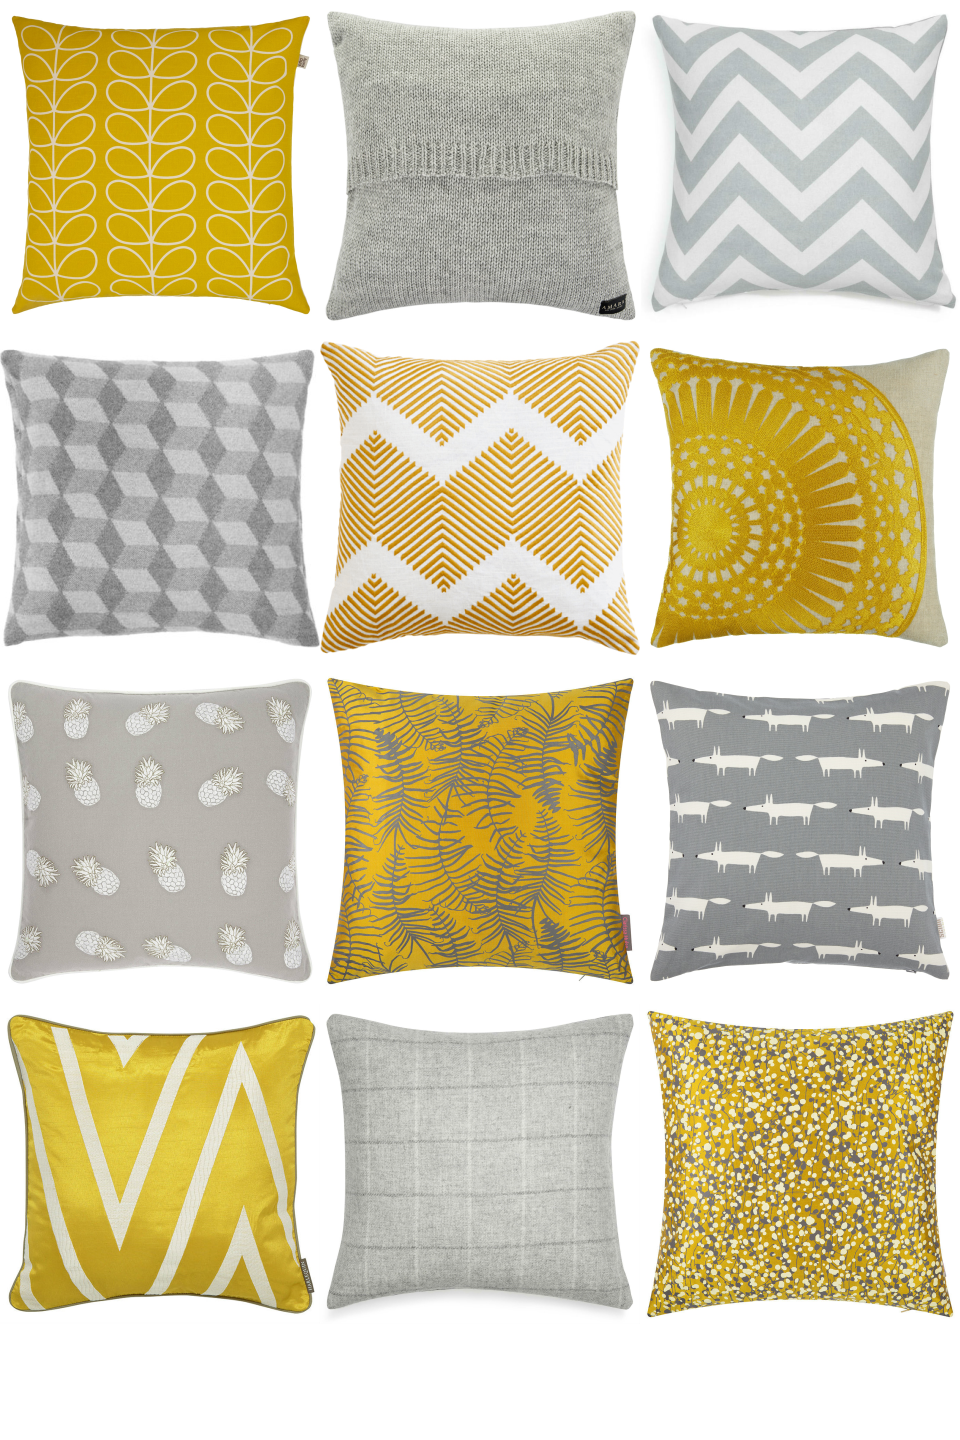 dc01d143d63ae938a12ffbe70dcc6ec3 - Seven Things That Happen When You Are In Yellow And Grey Pillows